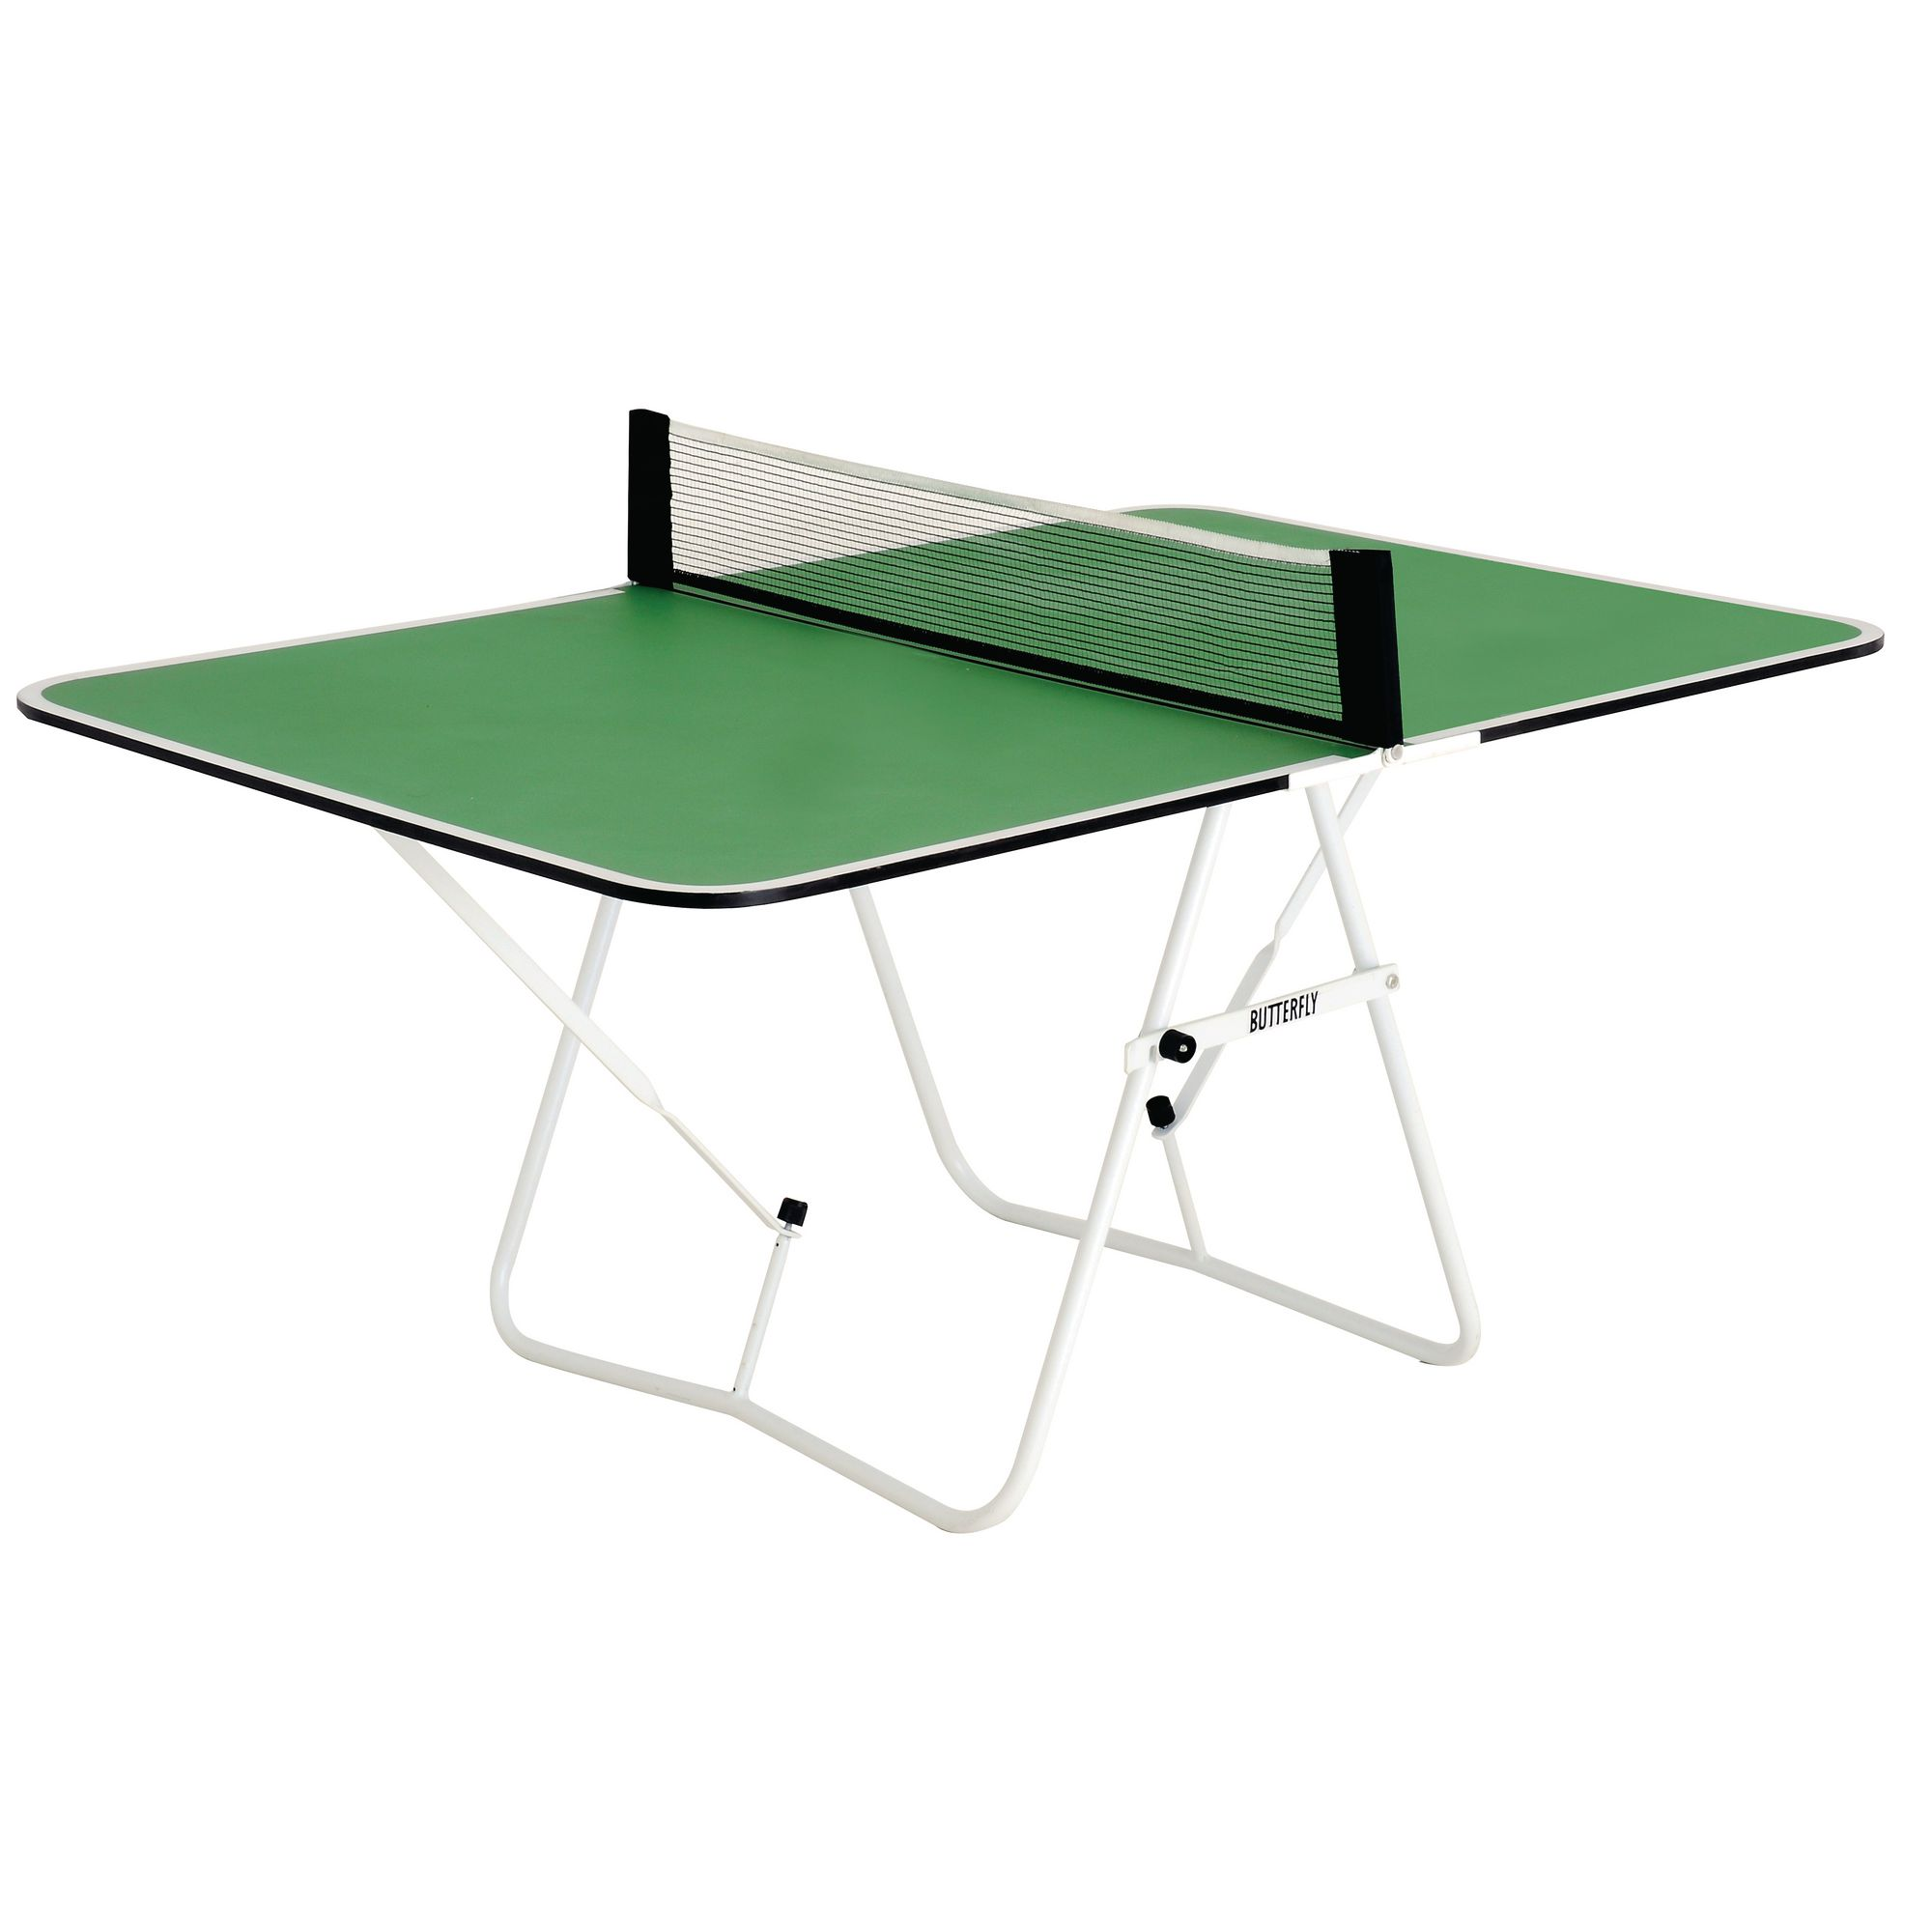 Butterfly Primary Indoor Table Tennis Table